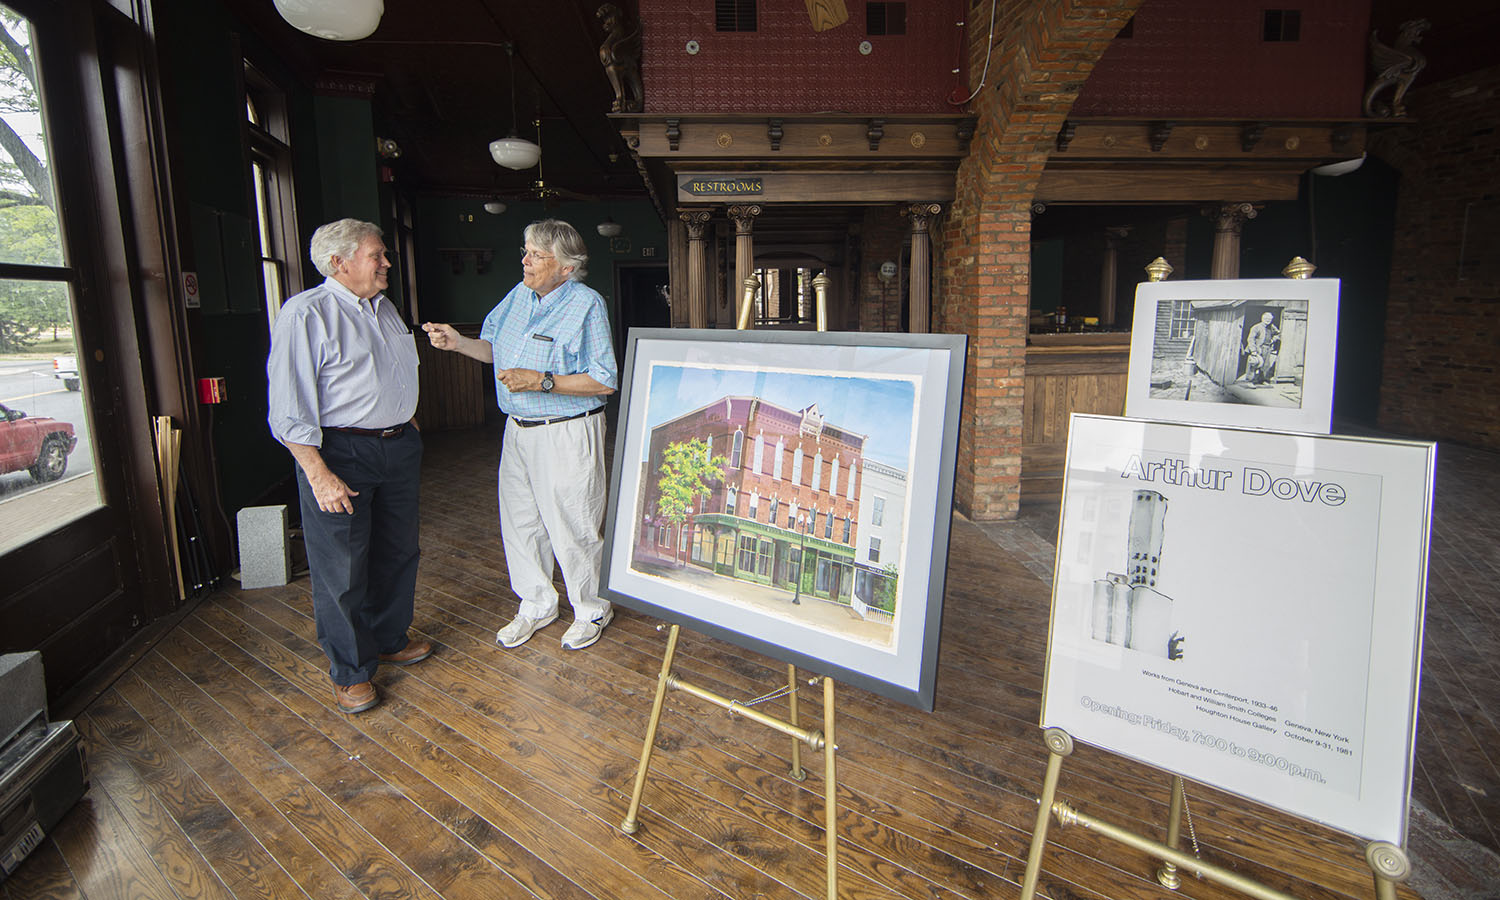 A collaboration between Professor Emeritus of Anthropology and Sociology Jim Spates and local businessman Dave Bunnell intends to refurbish a historical downtown Geneva building with ties to HWS and the modernist art movement of the early 20th century.